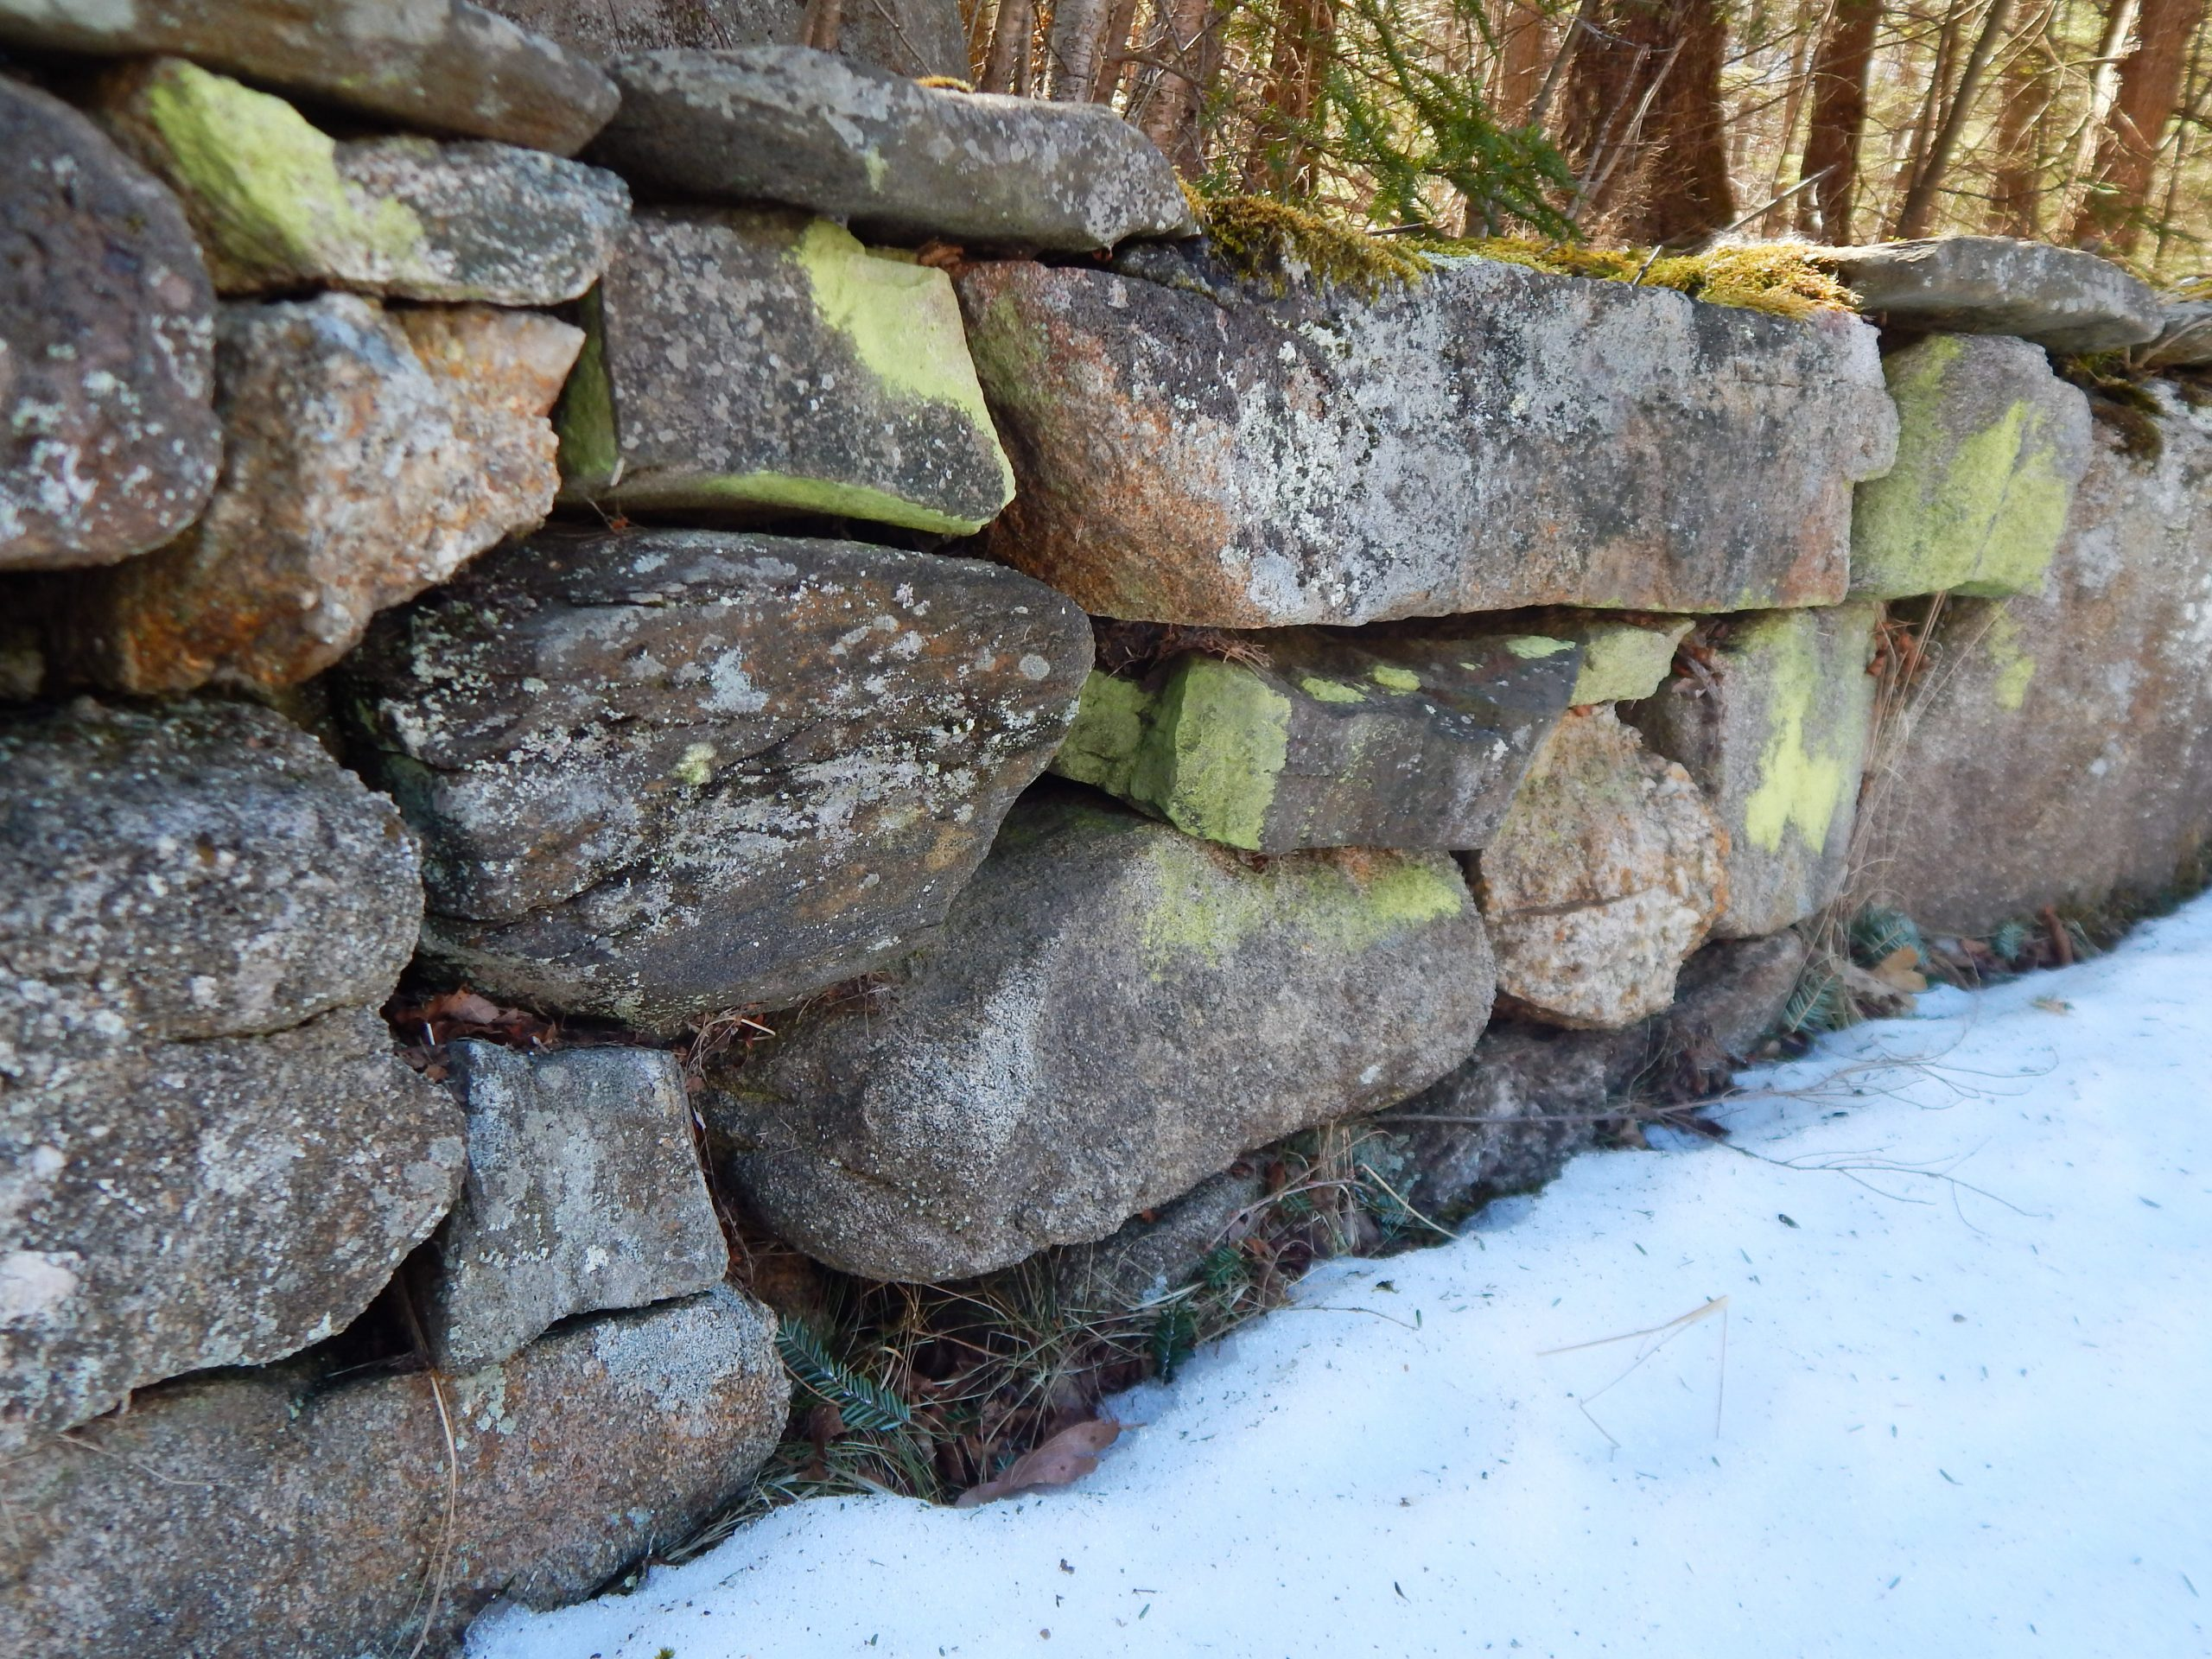 stonewall covered in variying shades of green lichen with snow on the ground.